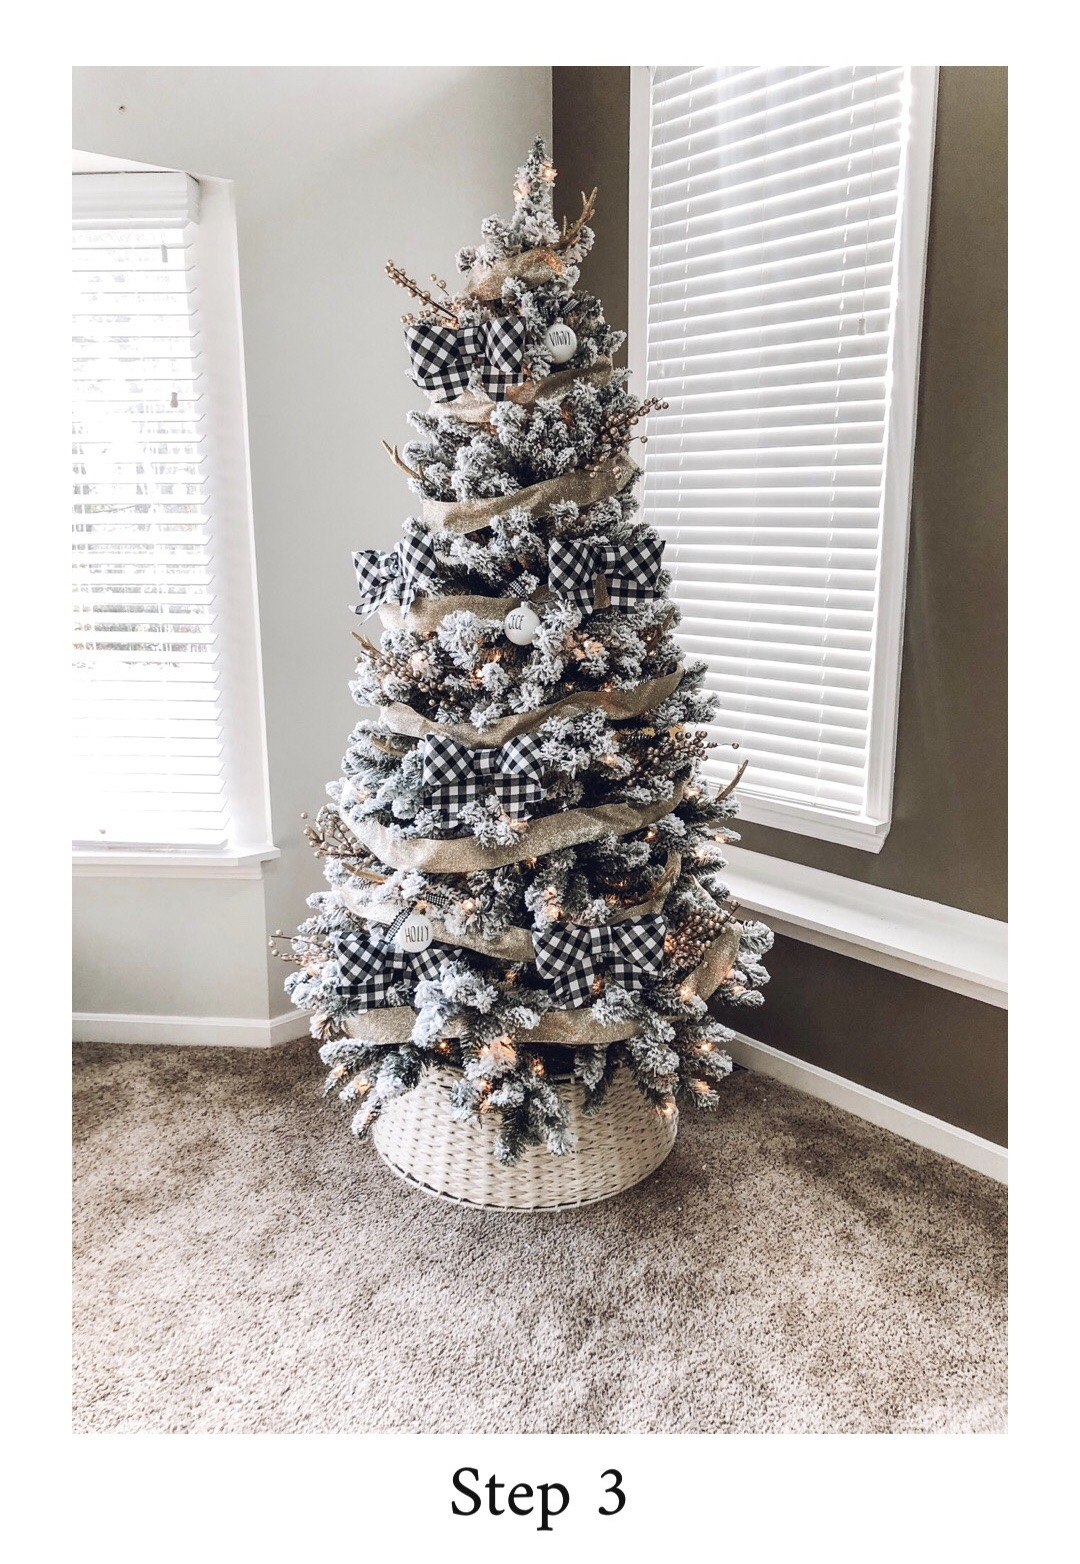 Decorate your Christmas Tree in Five Easy Steps